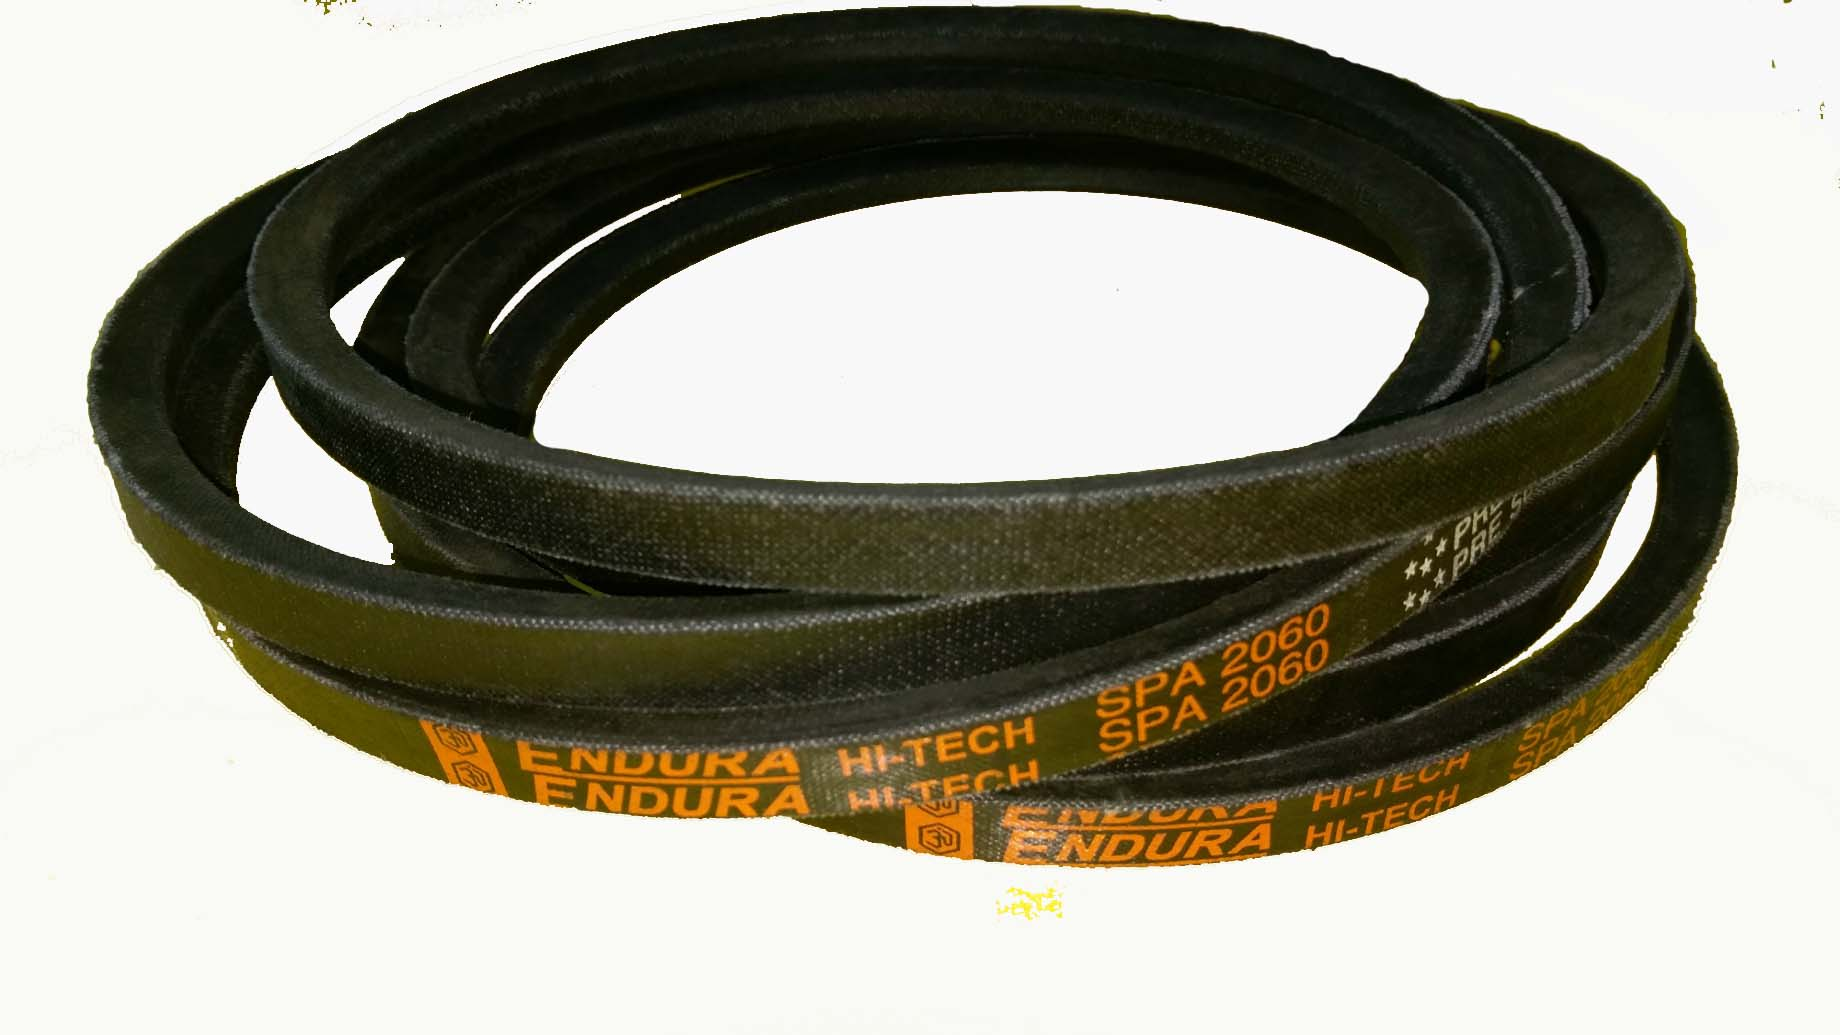 Endura Hi Tech Brand V Belt Spa 1900 Sparesswala